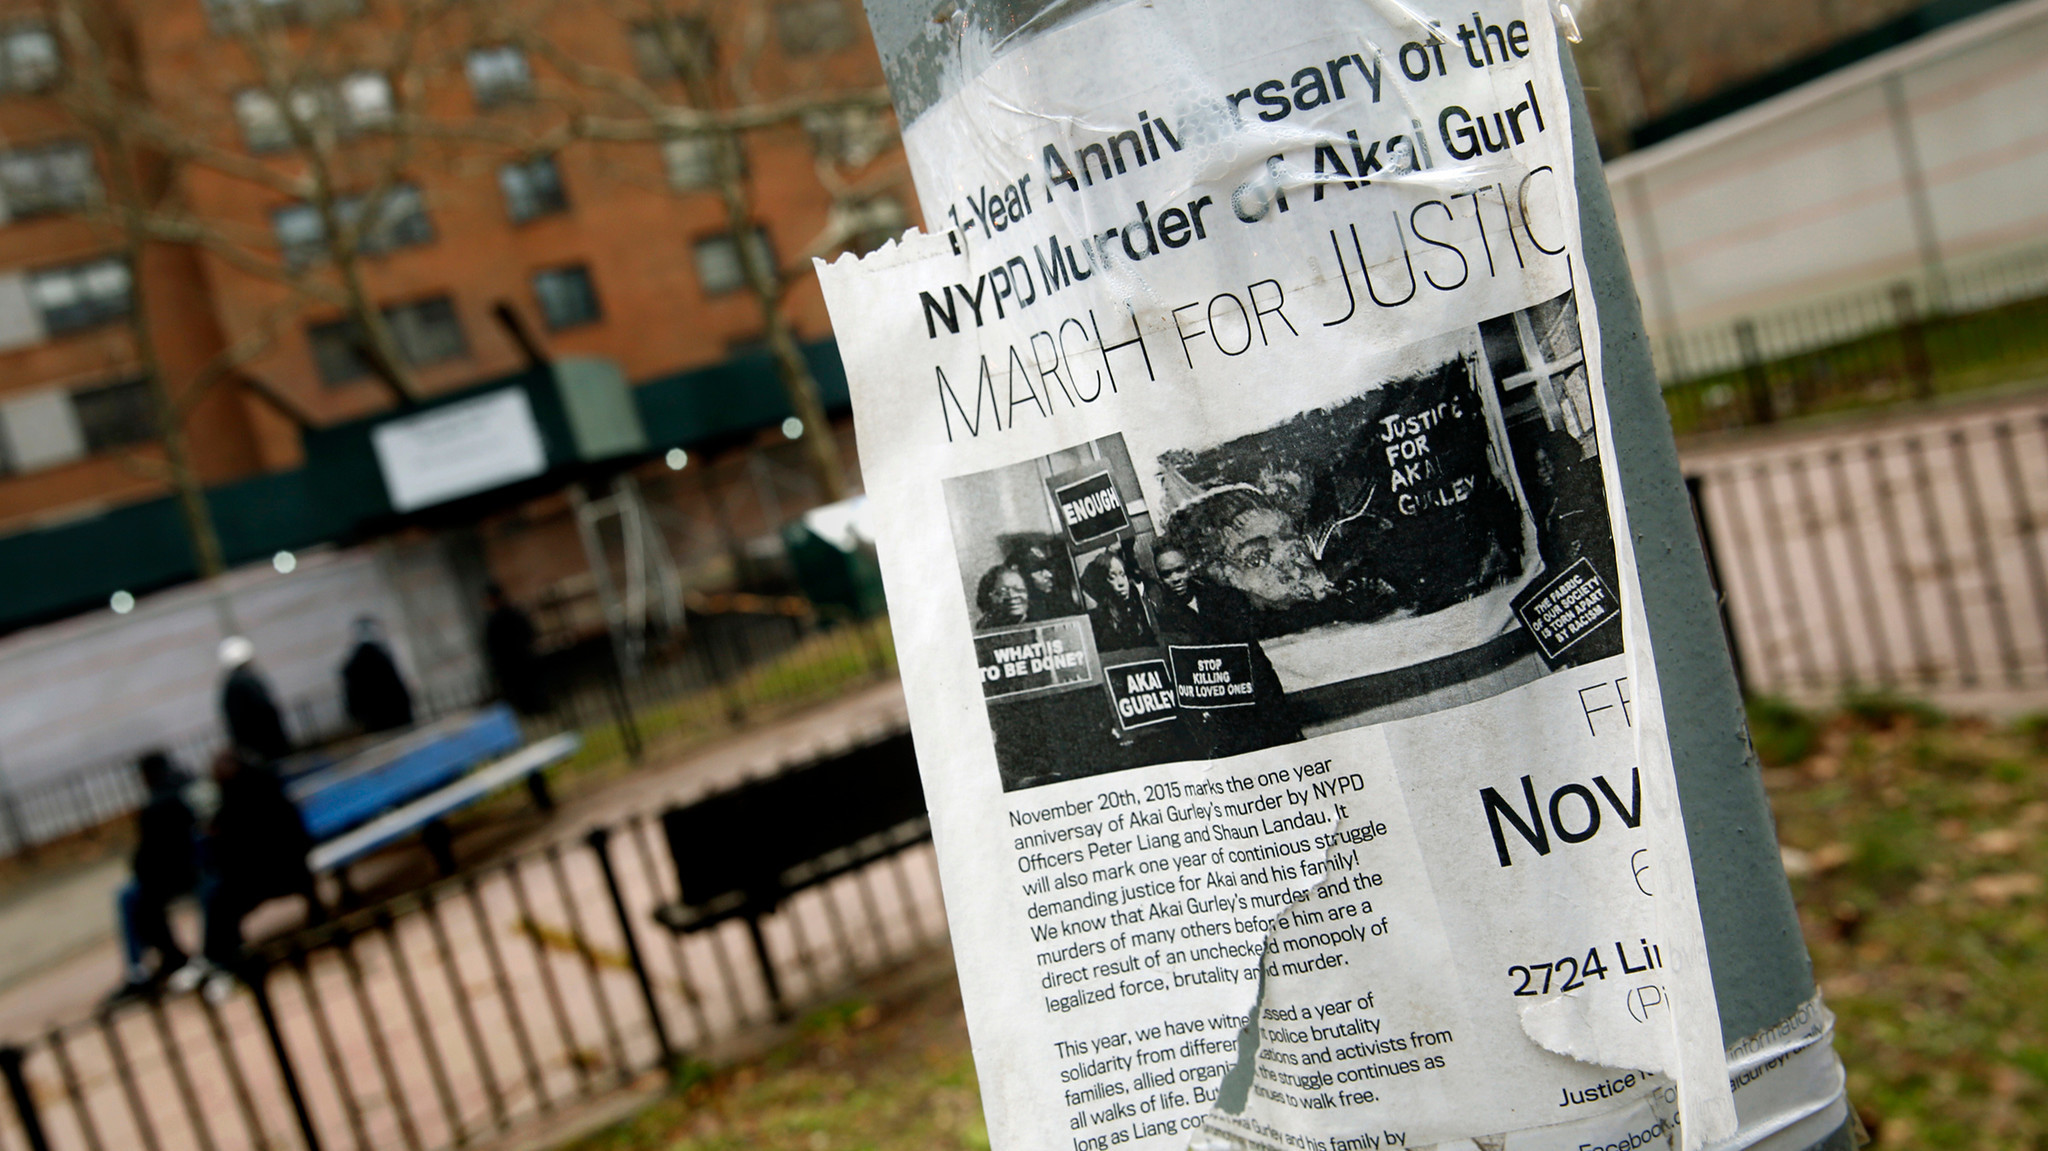 A poster in New York announces a protest march a year after the shooting death of Akai Gurley.